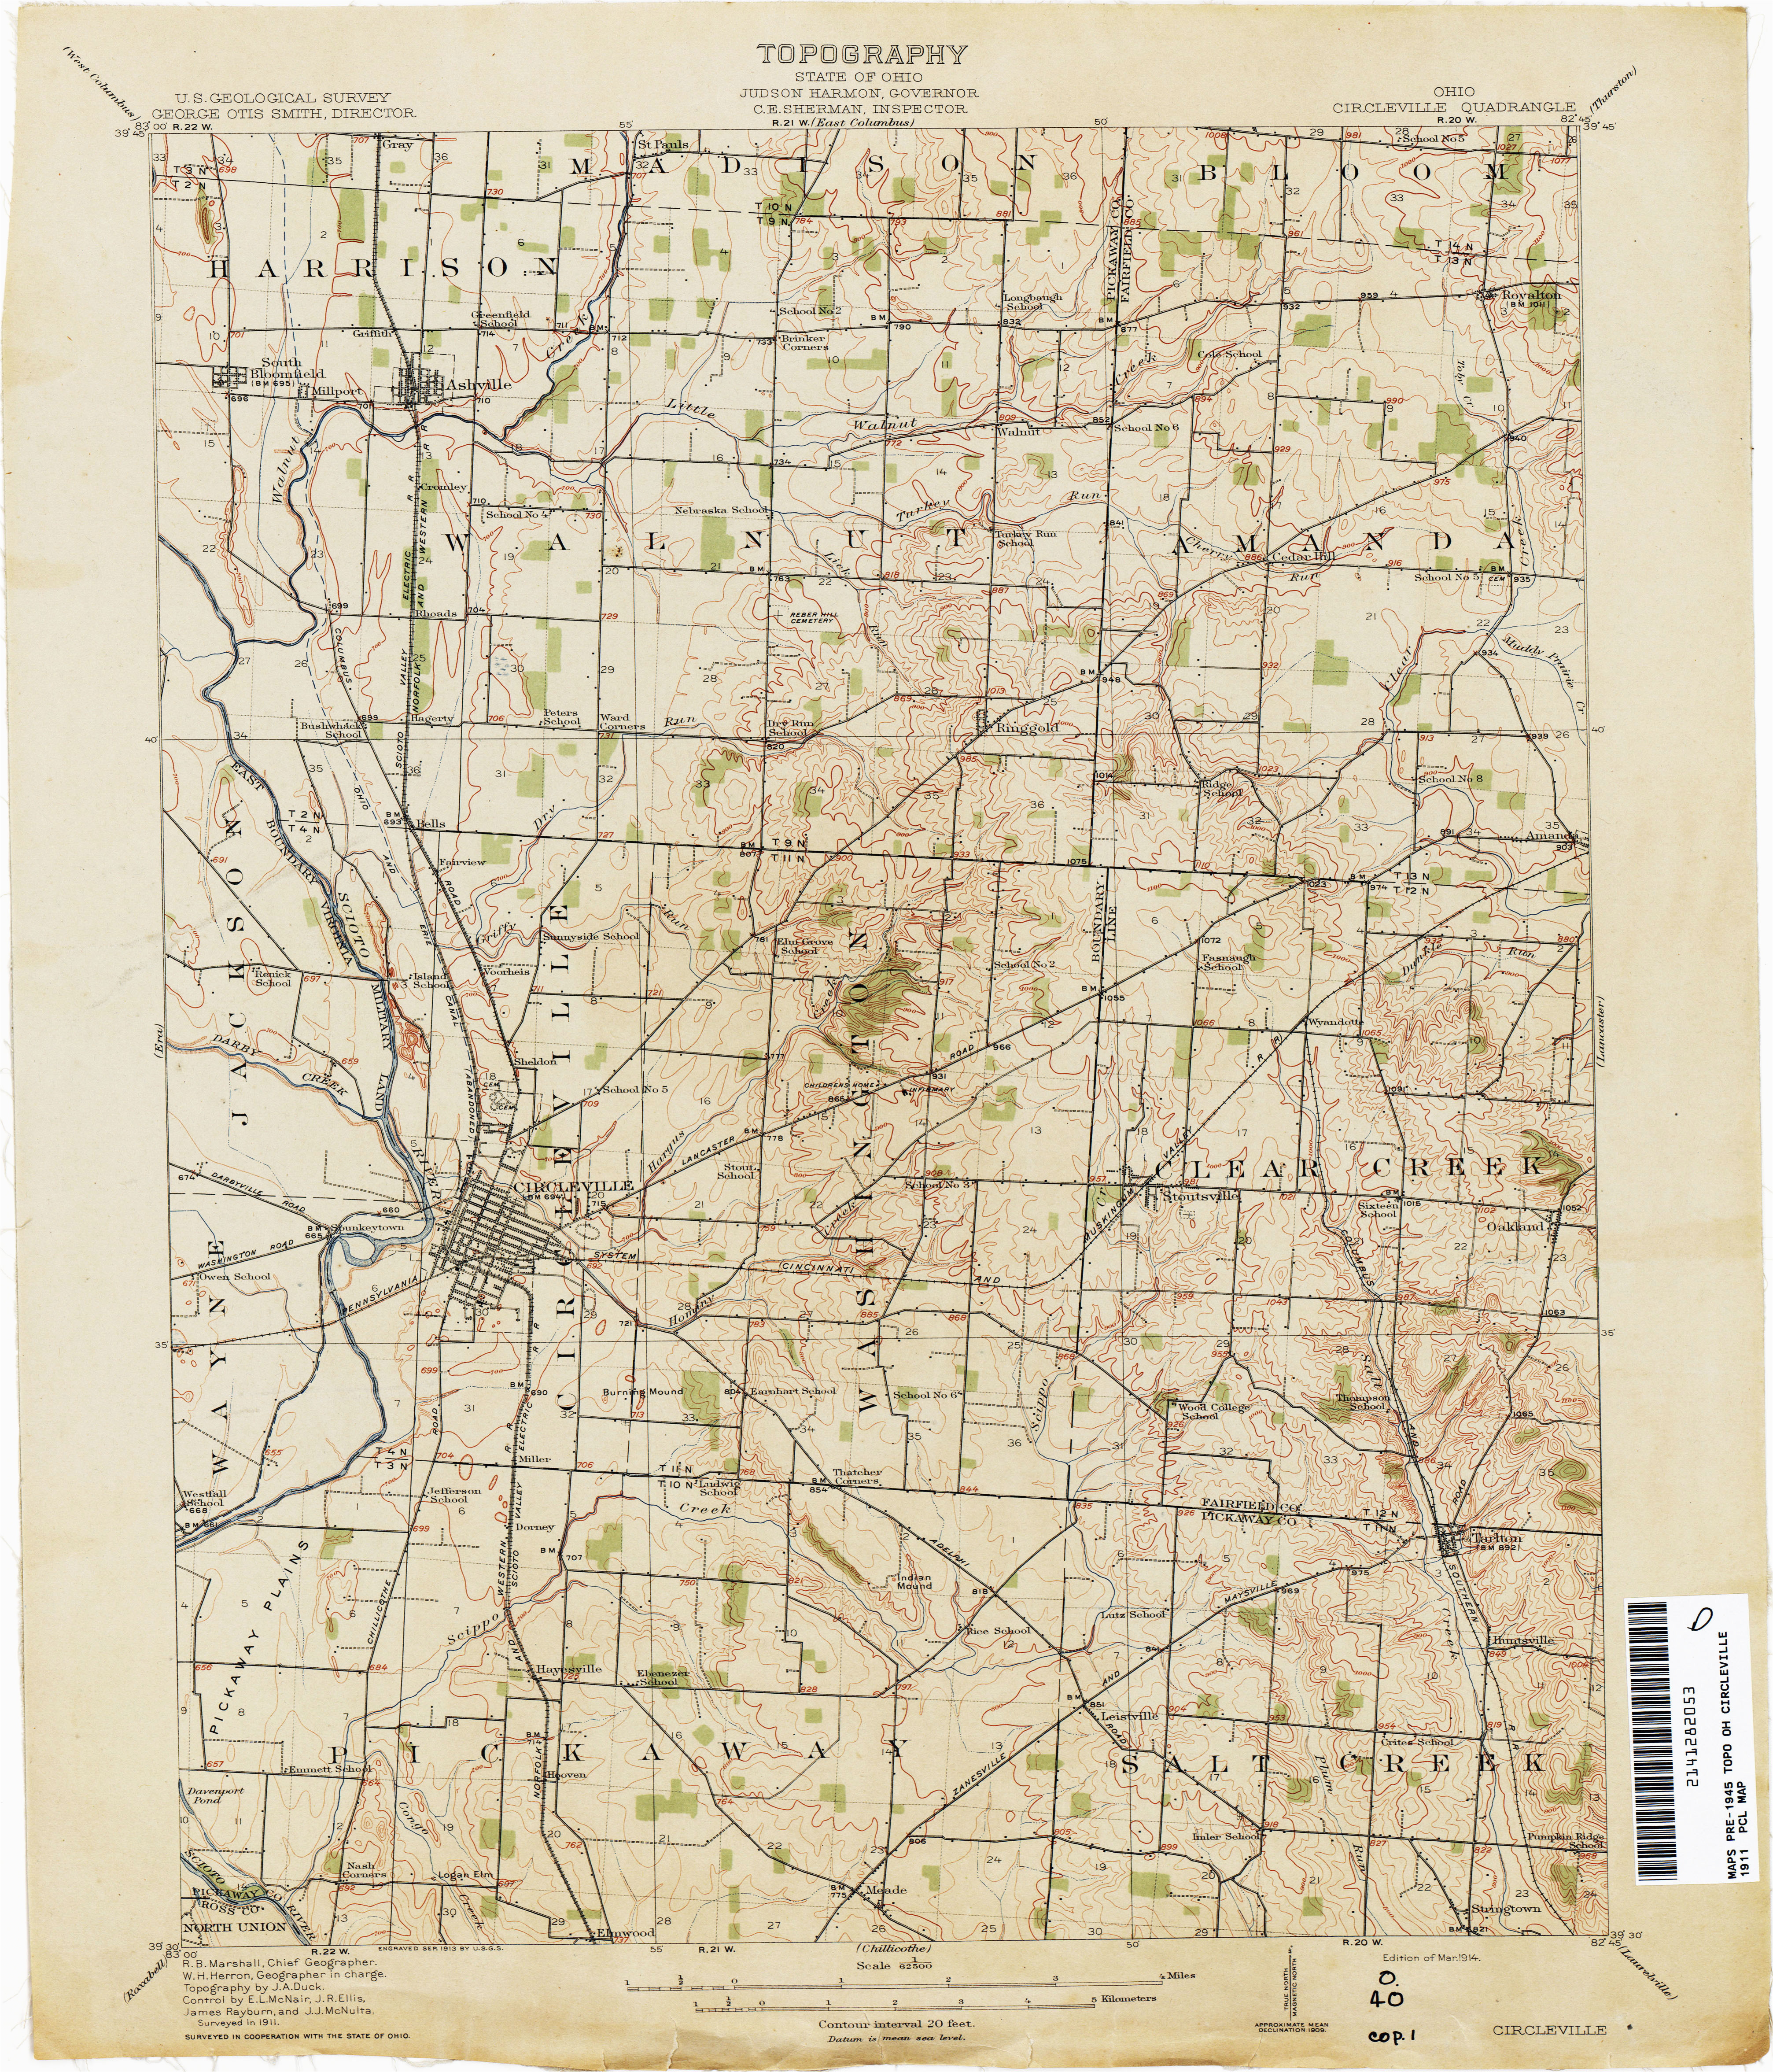 Ross County Ohio Map Ohio Historical topographic Maps Perry Castaa Eda Map Collection